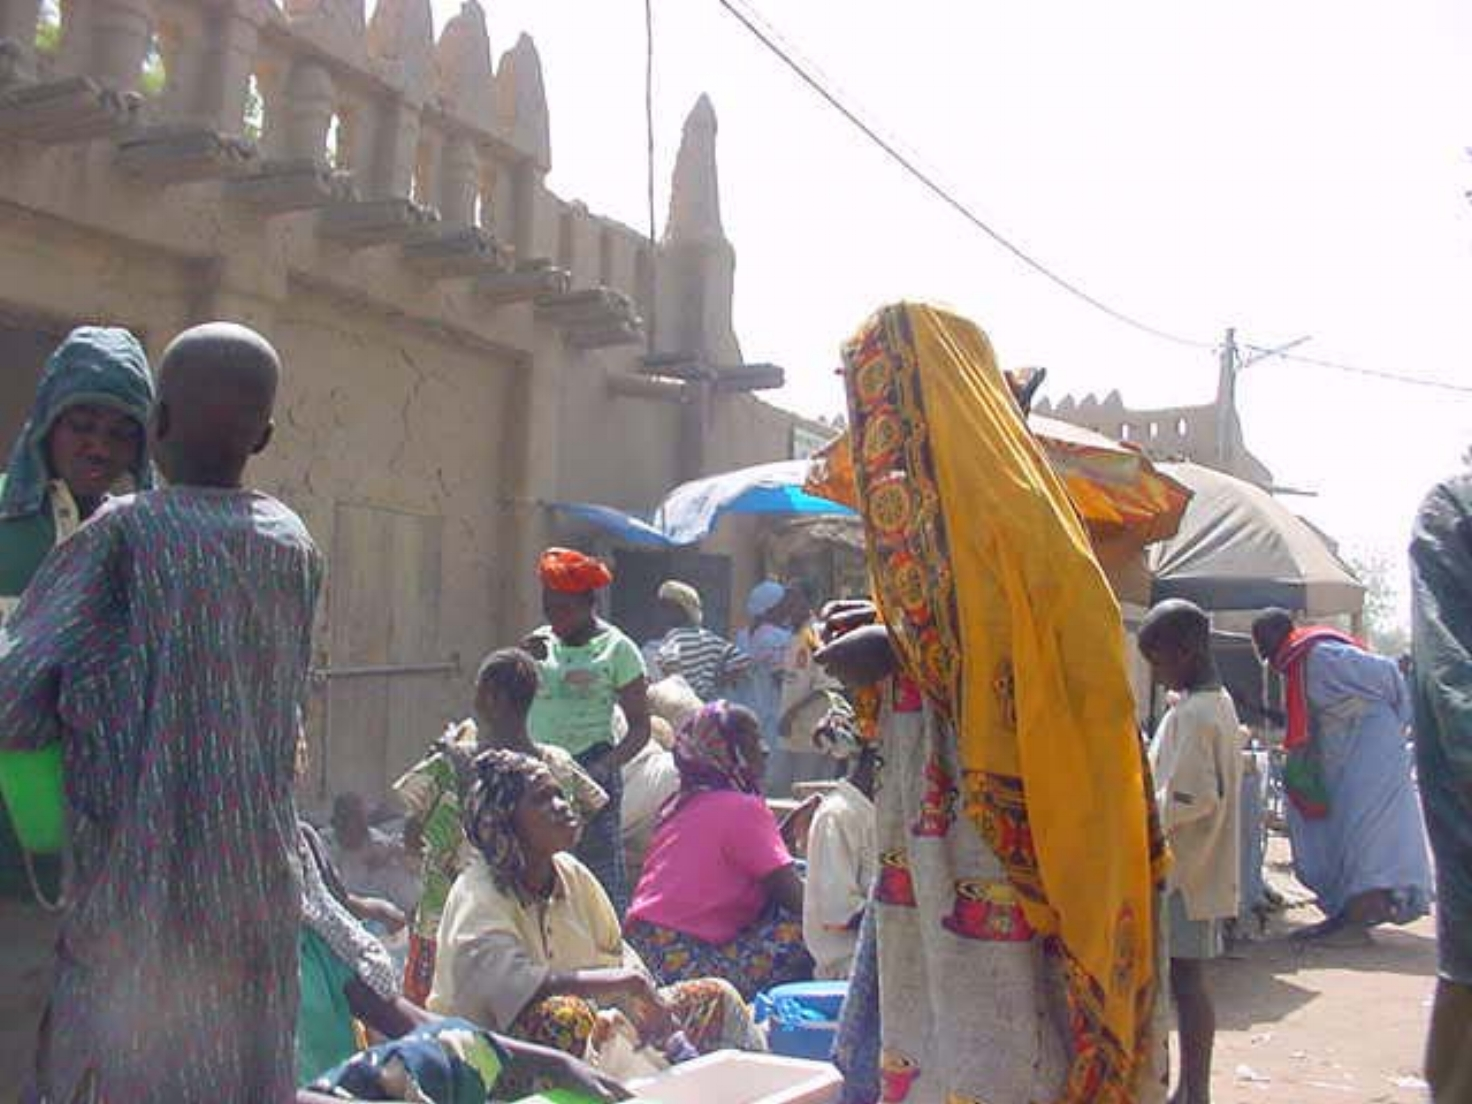 The market with mud homes behind